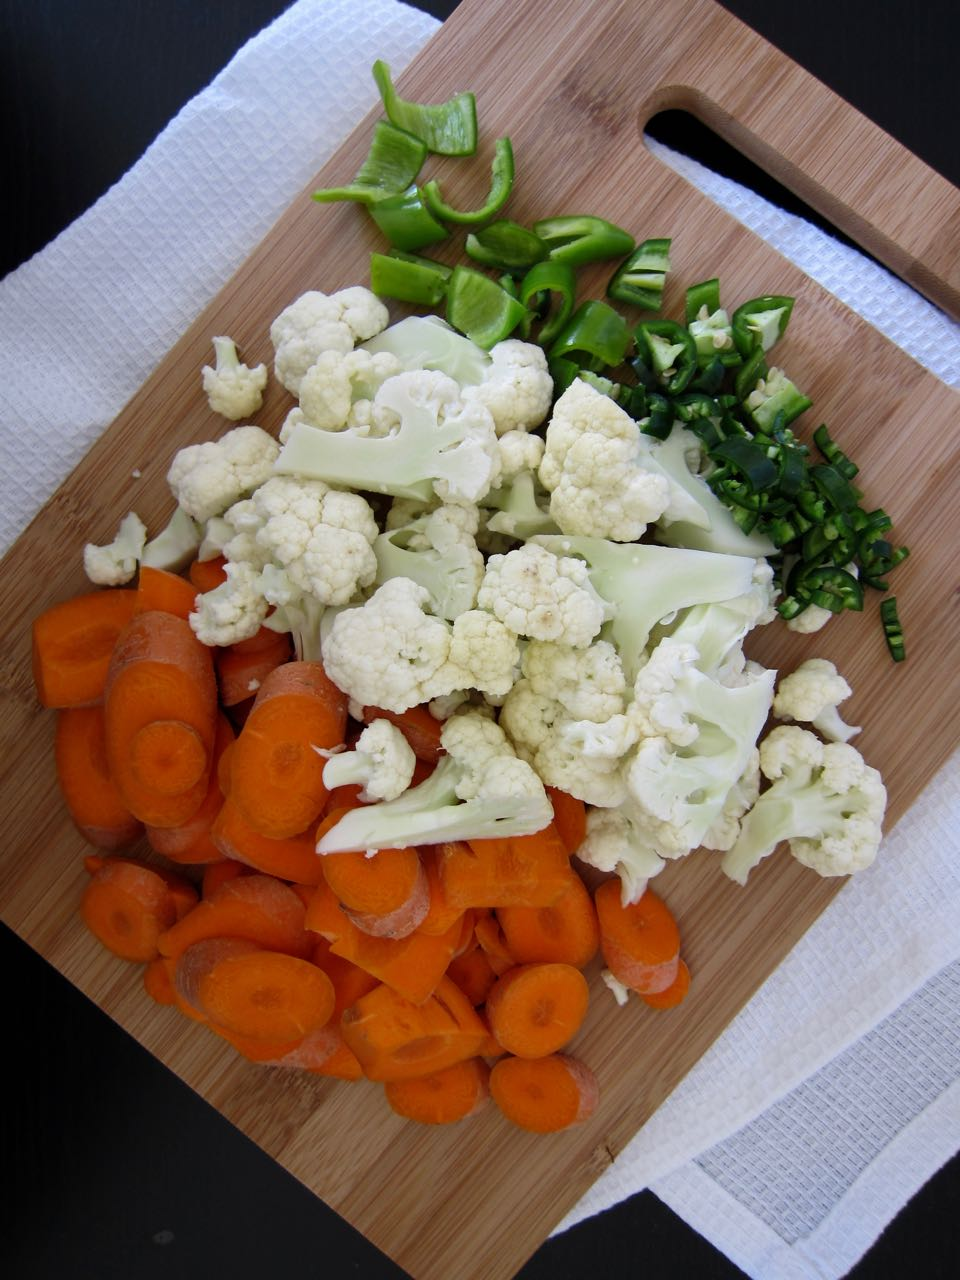 Escabeche Ingredients